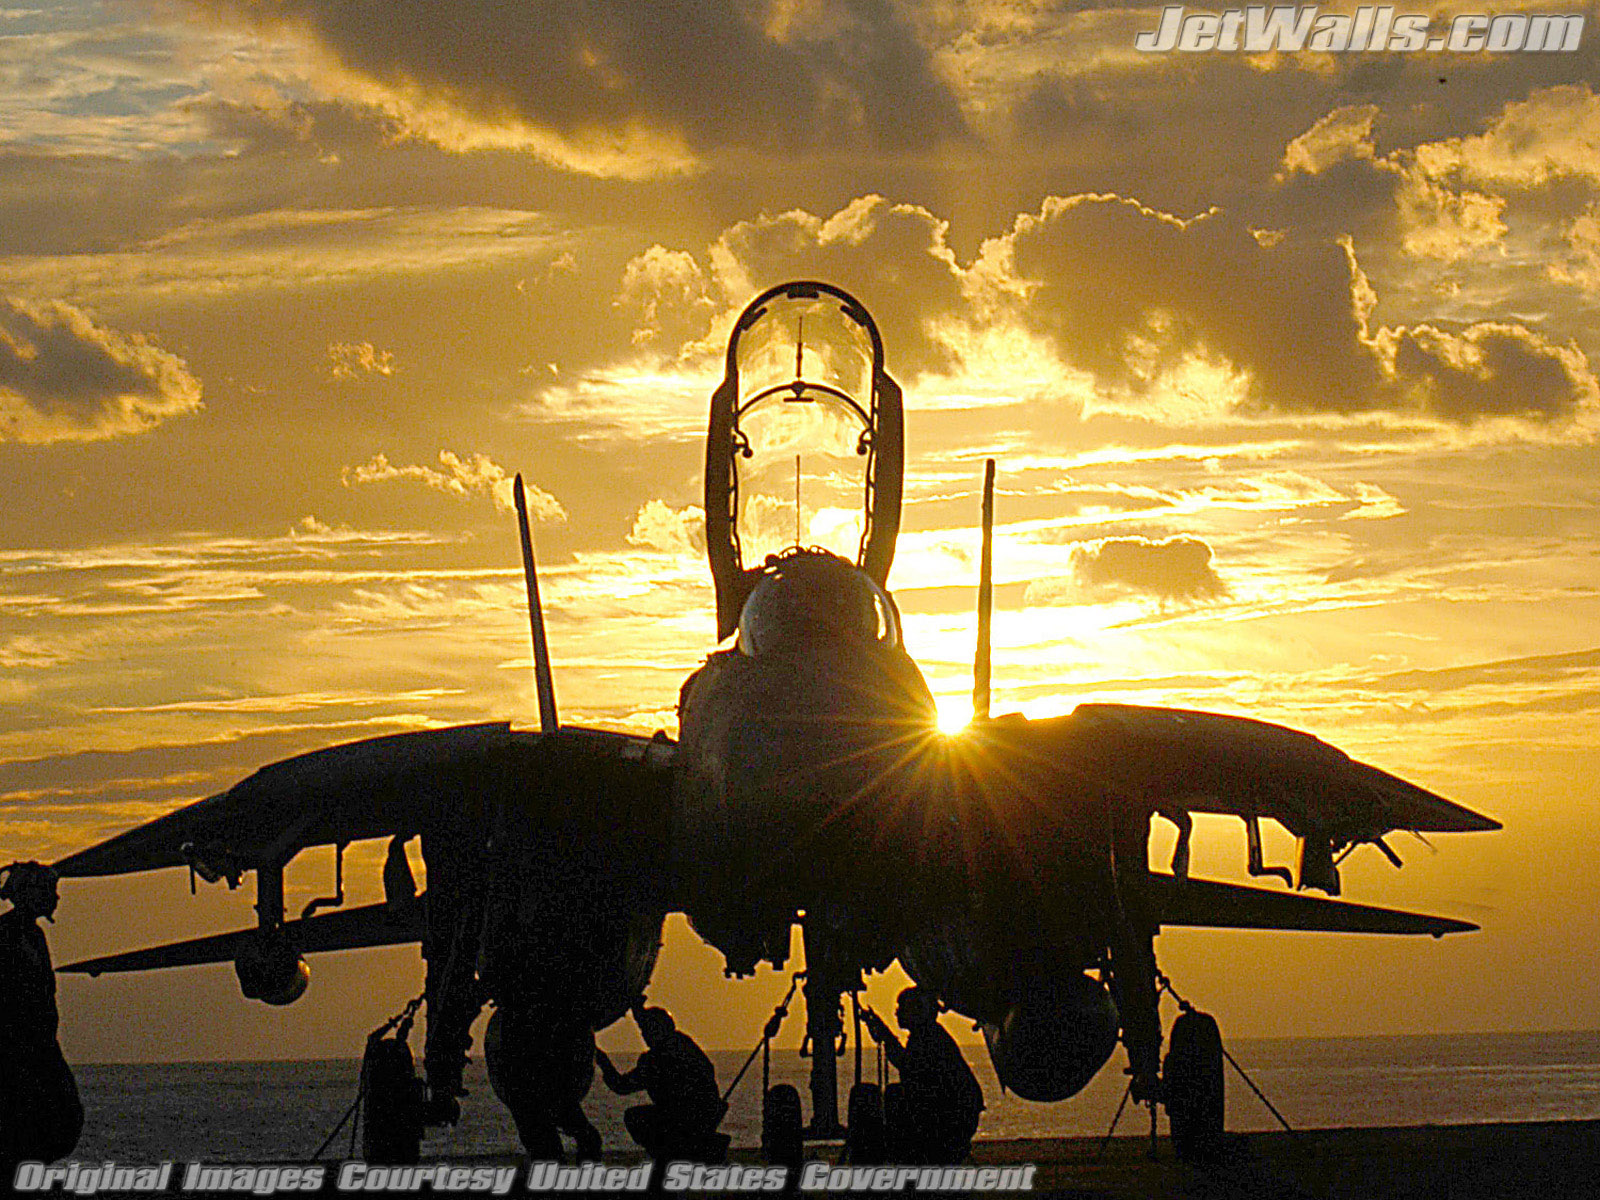 """F-14B Tomcat"" - Wallpaper No. 36 of 101. Right click for saving options."